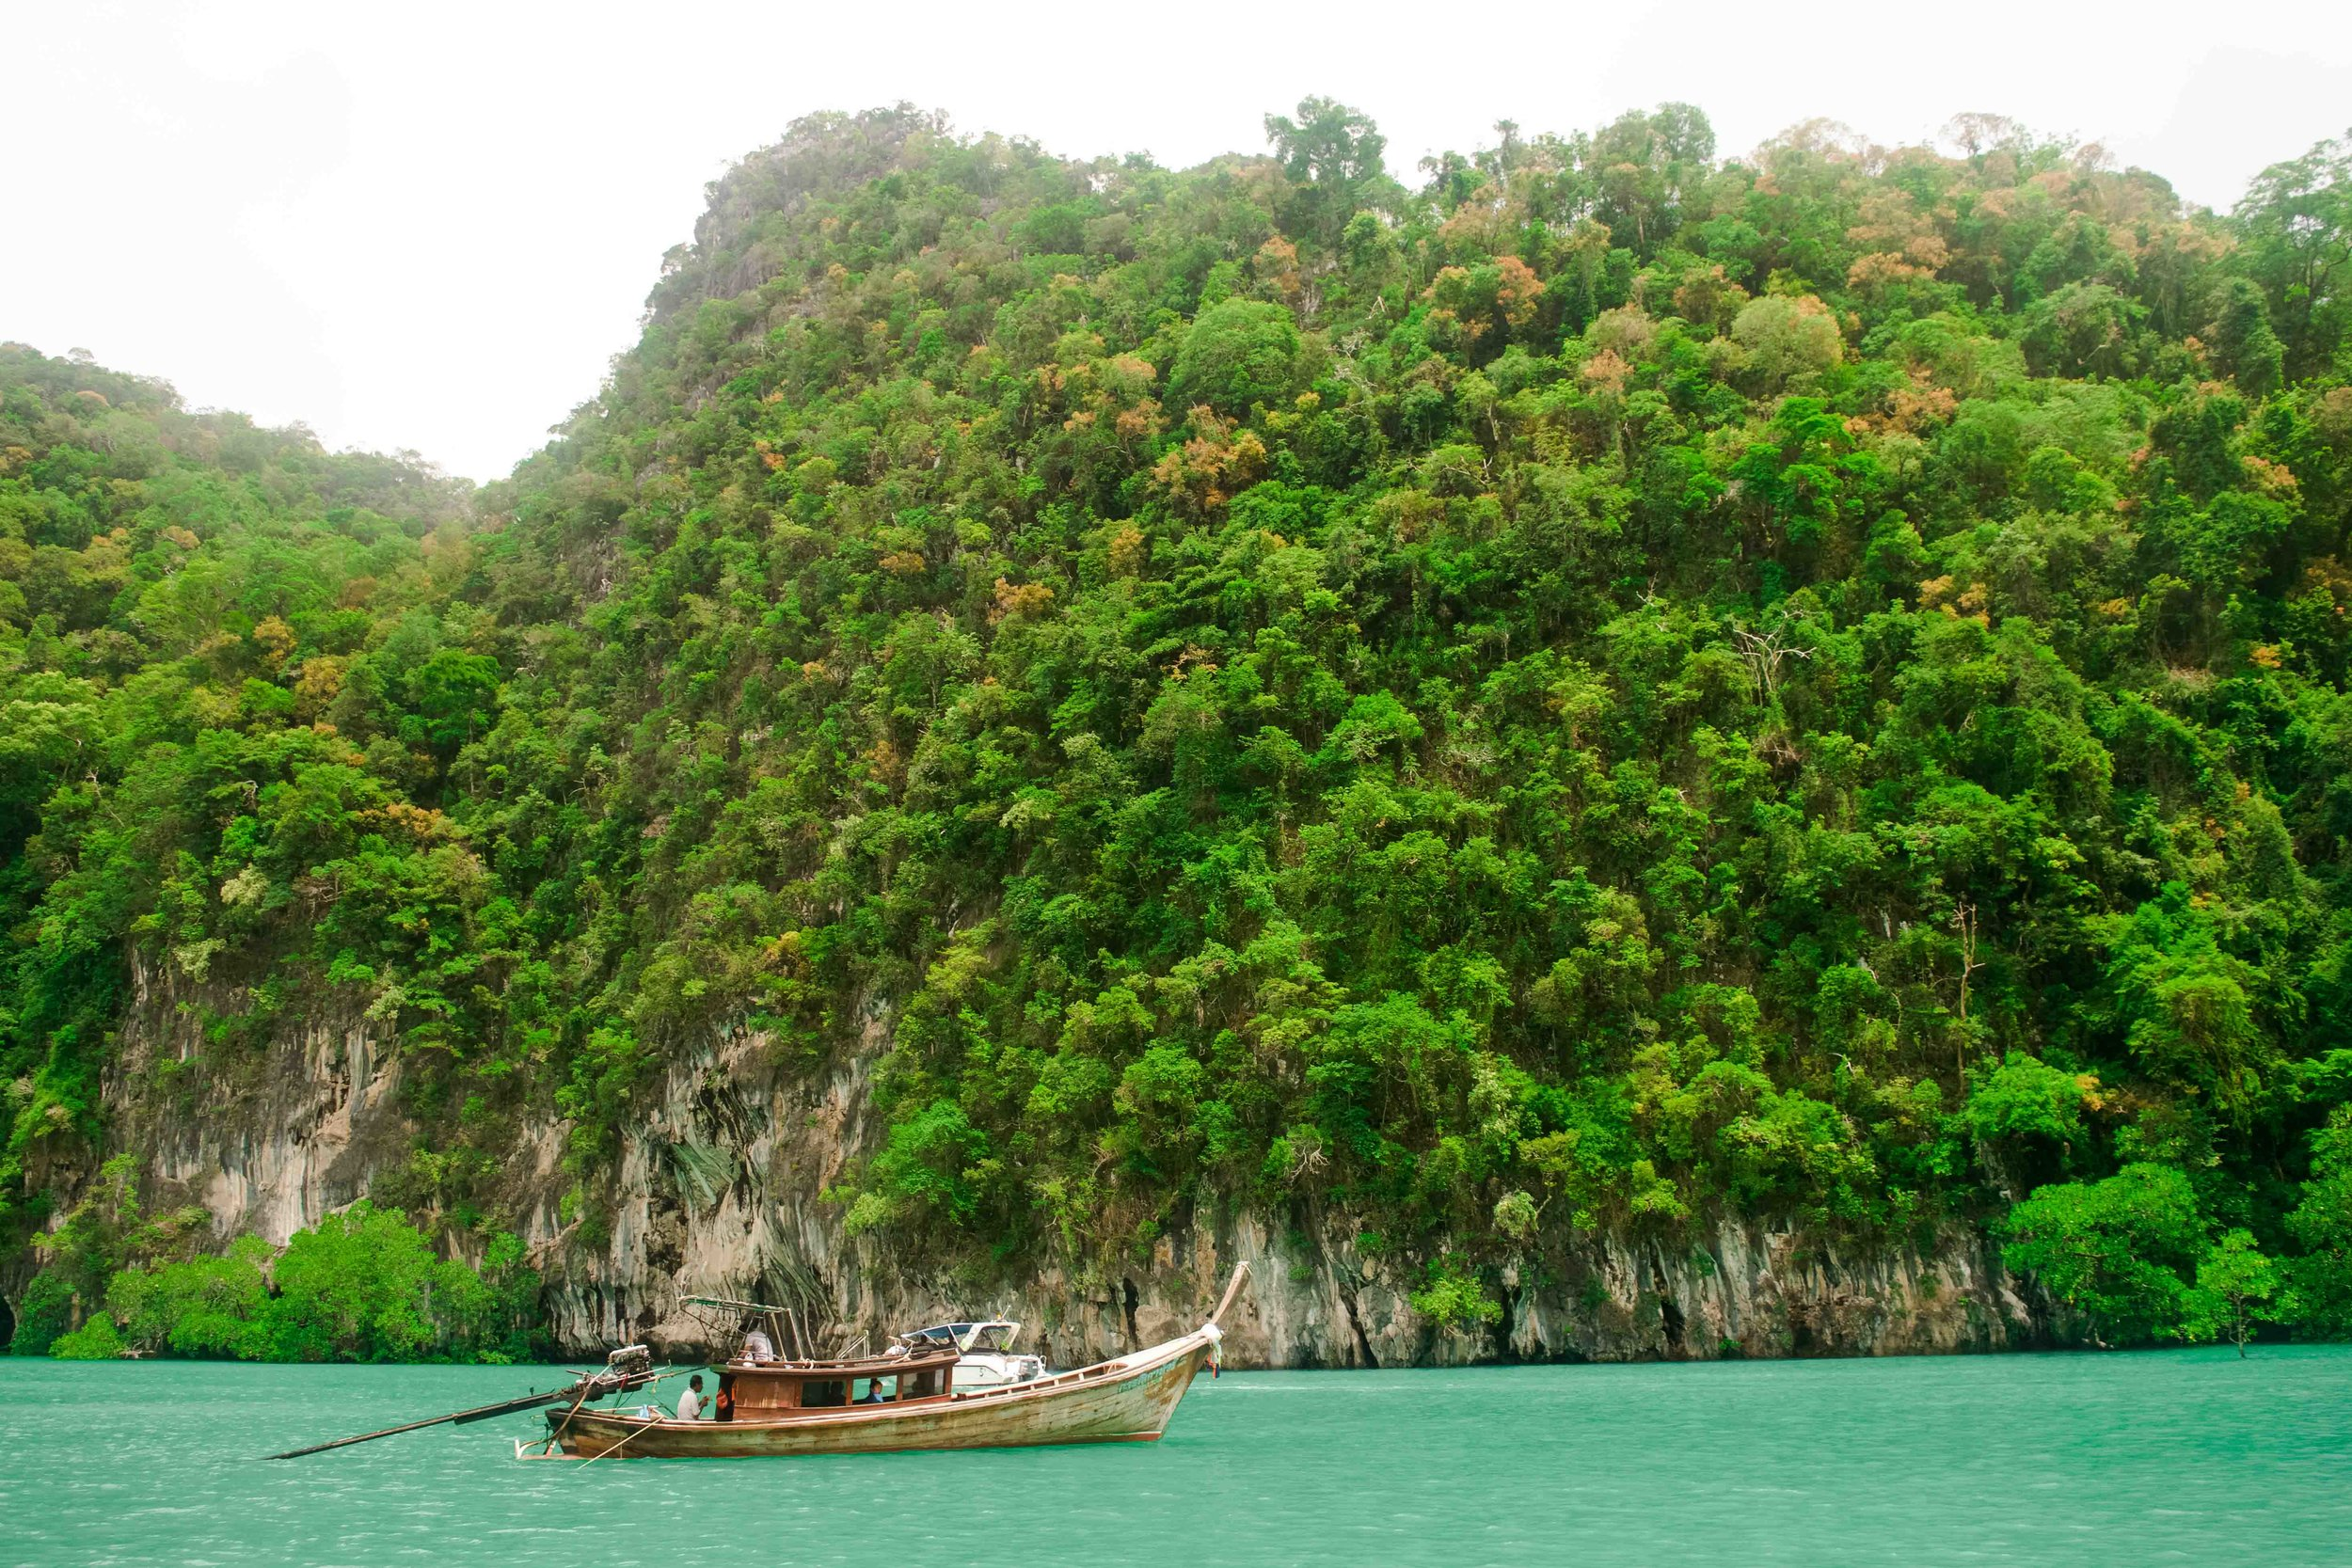 Hong Island near Krabi Thailand. One of the most beautiful islands in all of Thailand.